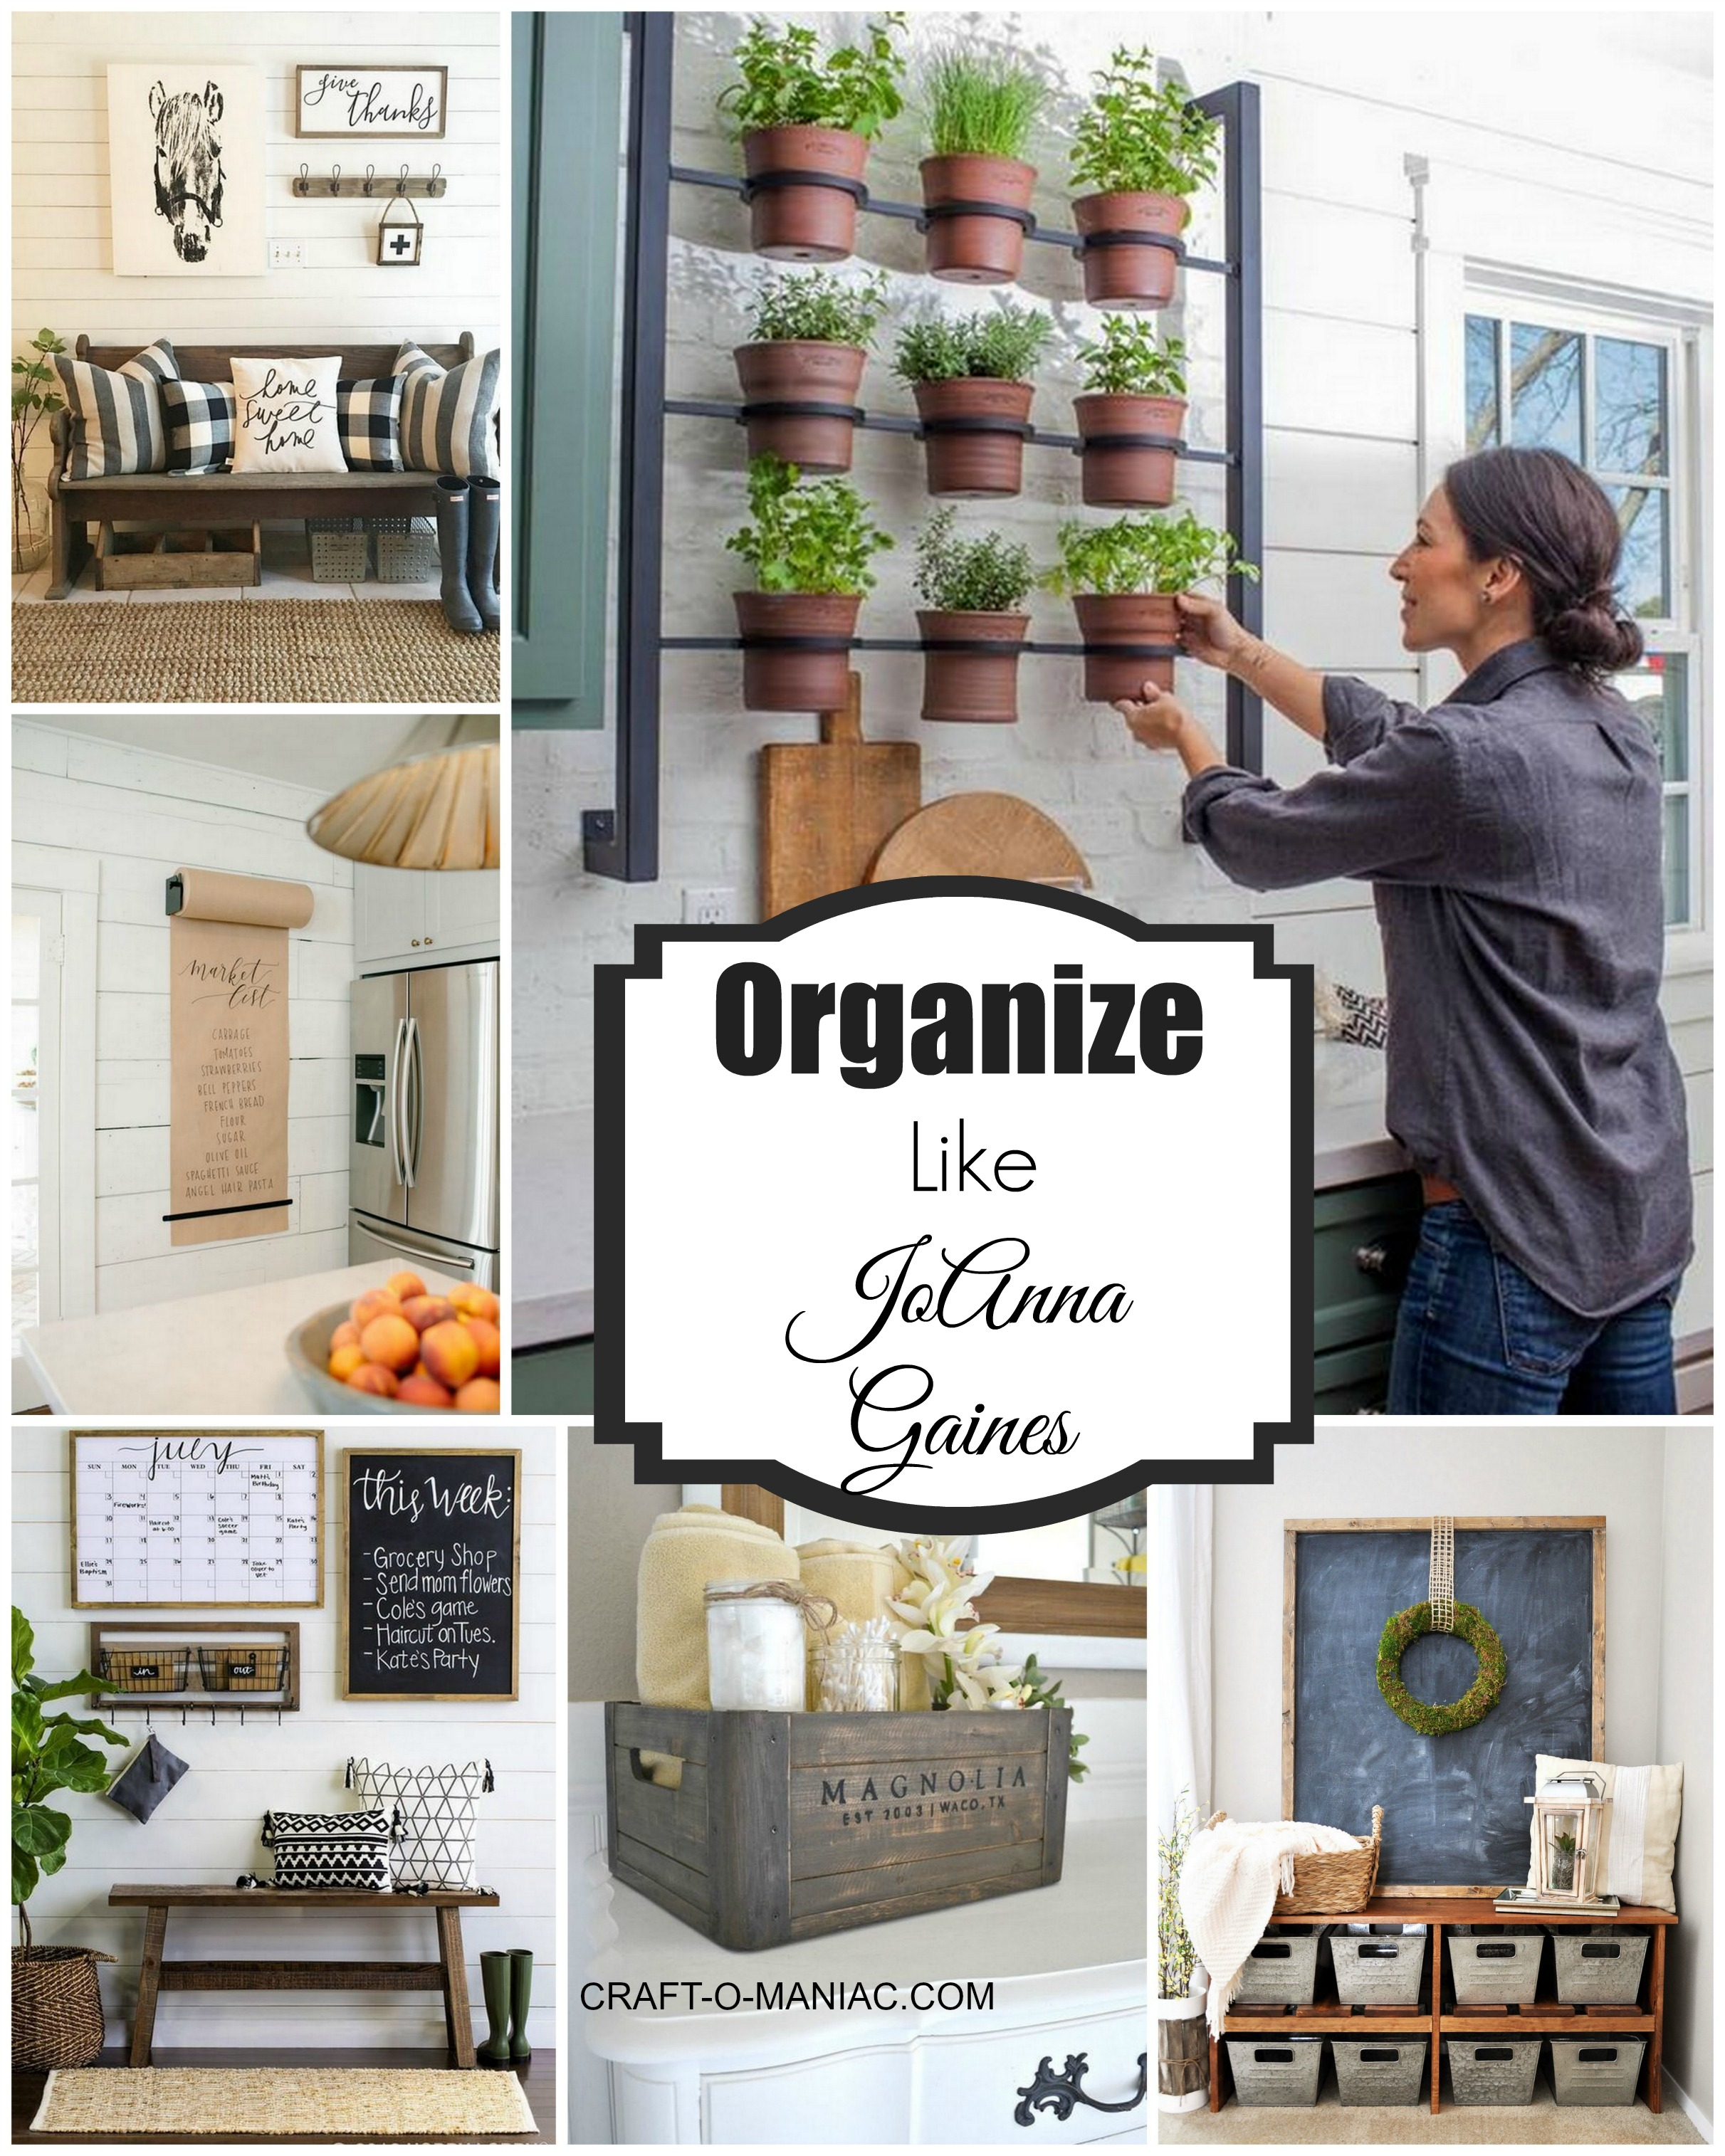 living rooms decorated by joanna gaines easy decorating ideas for small organize your home like - craft-o-maniac